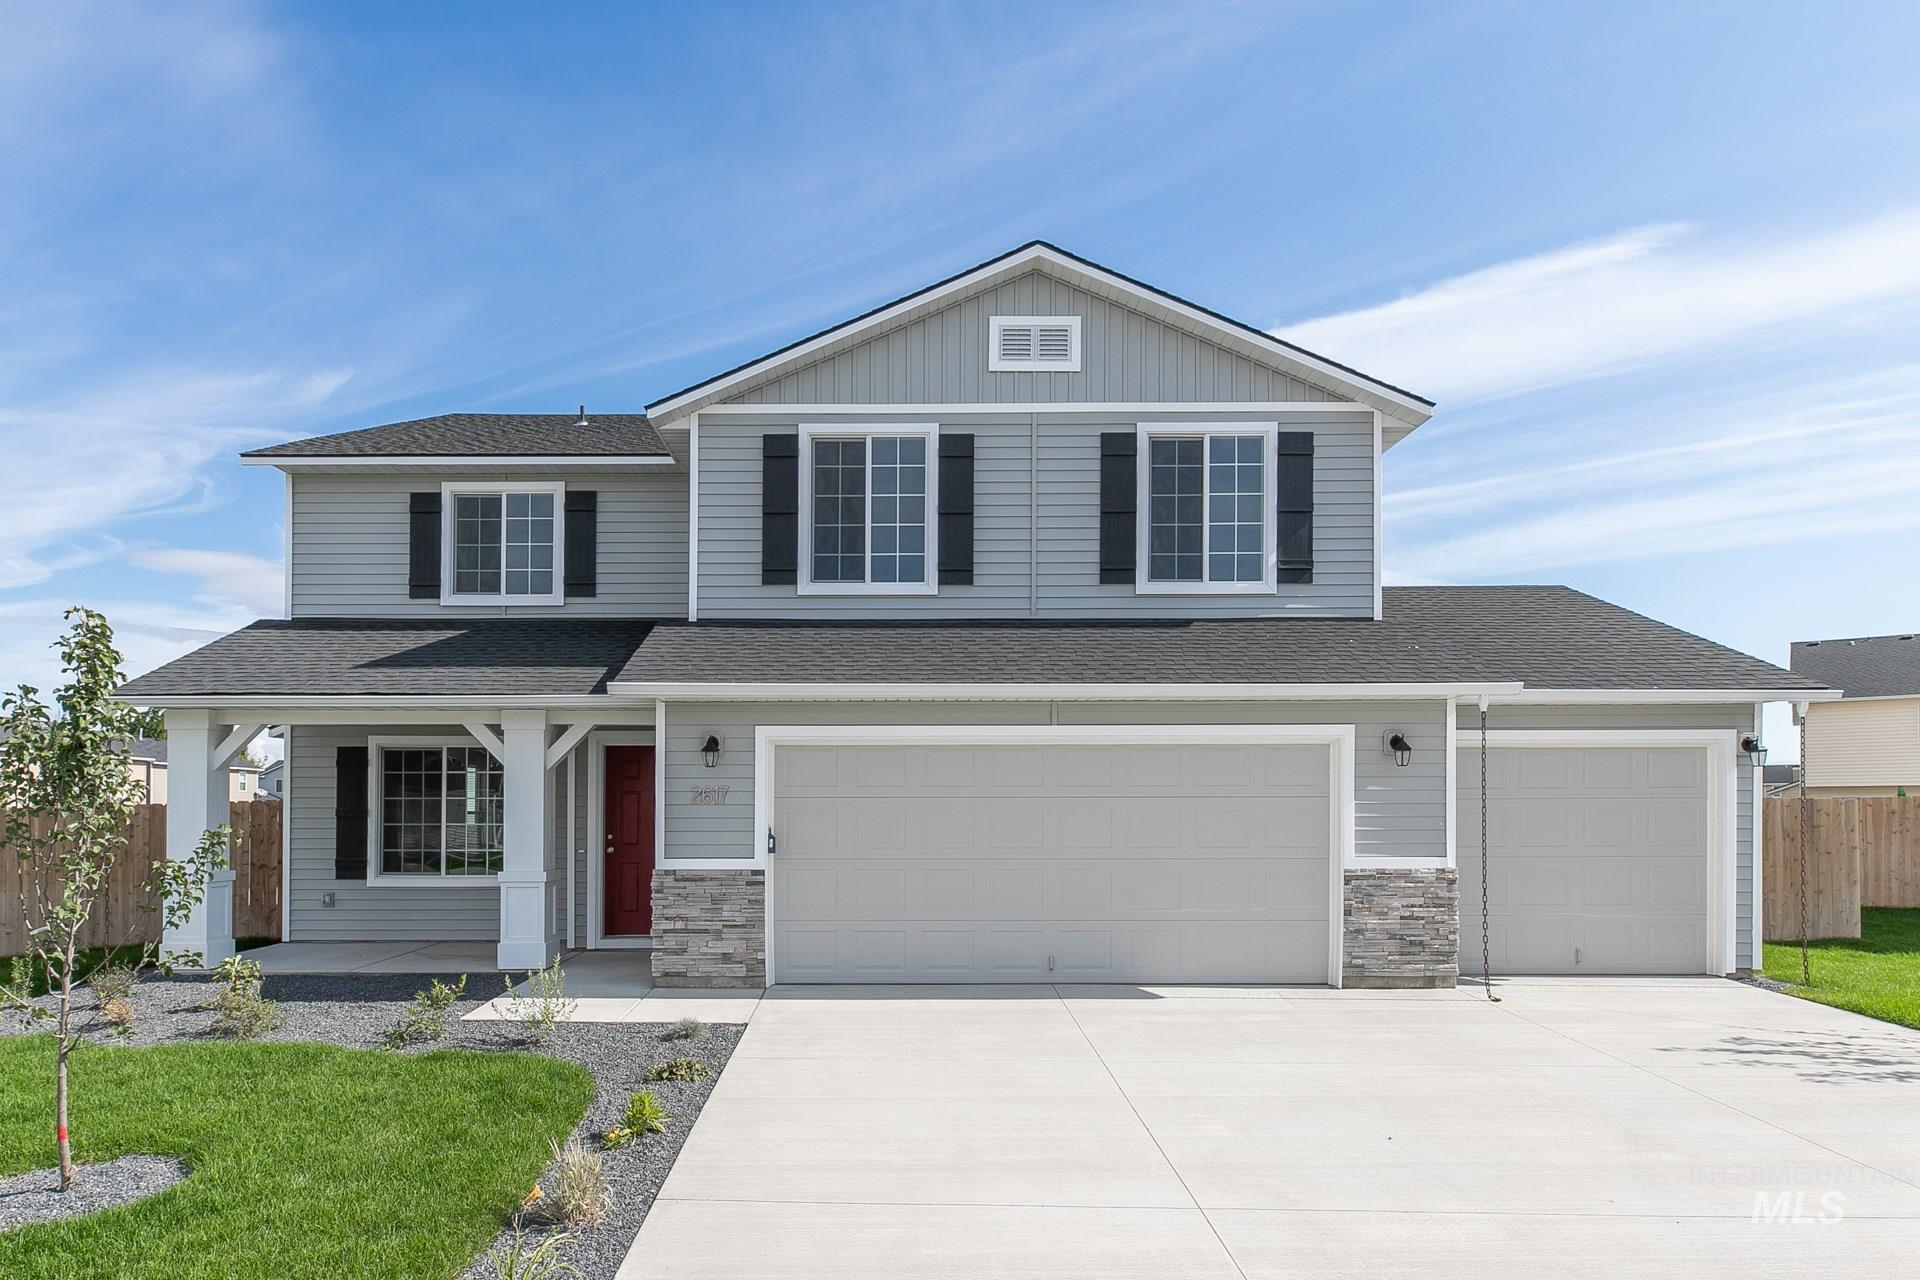 1452 N Thistle Dr Property Photo - Kuna, ID real estate listing